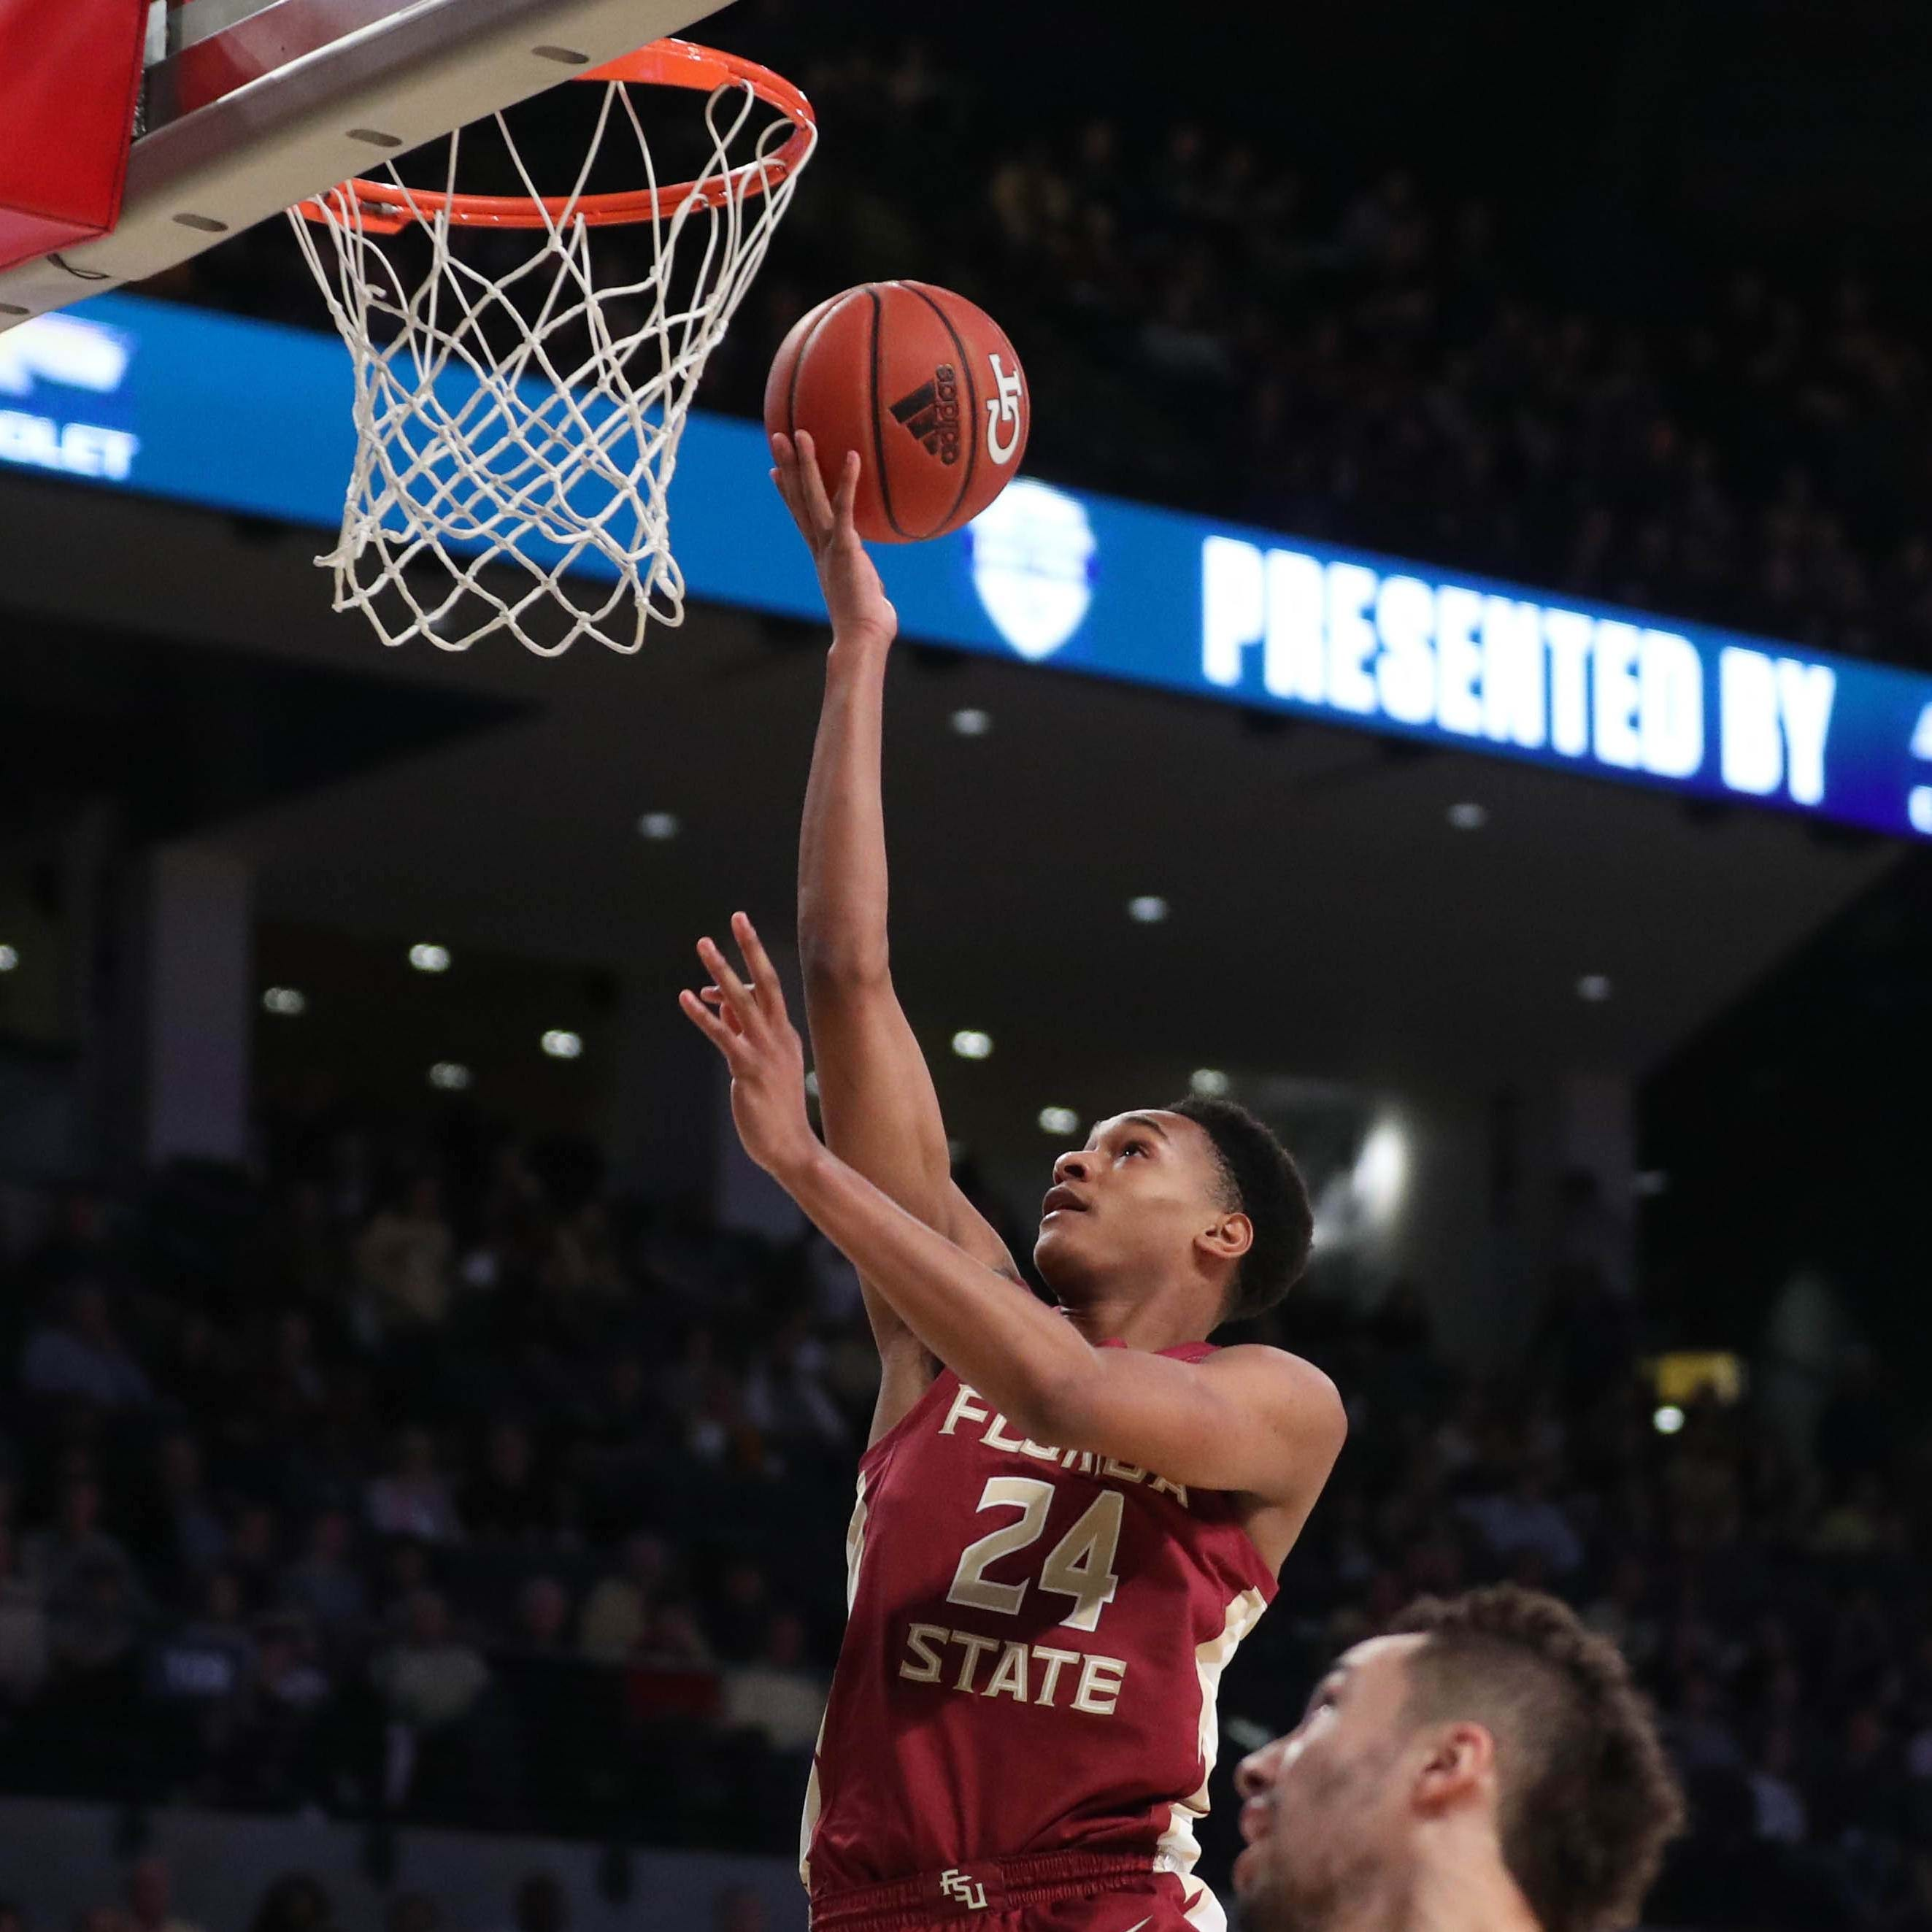 Florida State vs. Clemson men's basketball: How to watch on TV, live stream